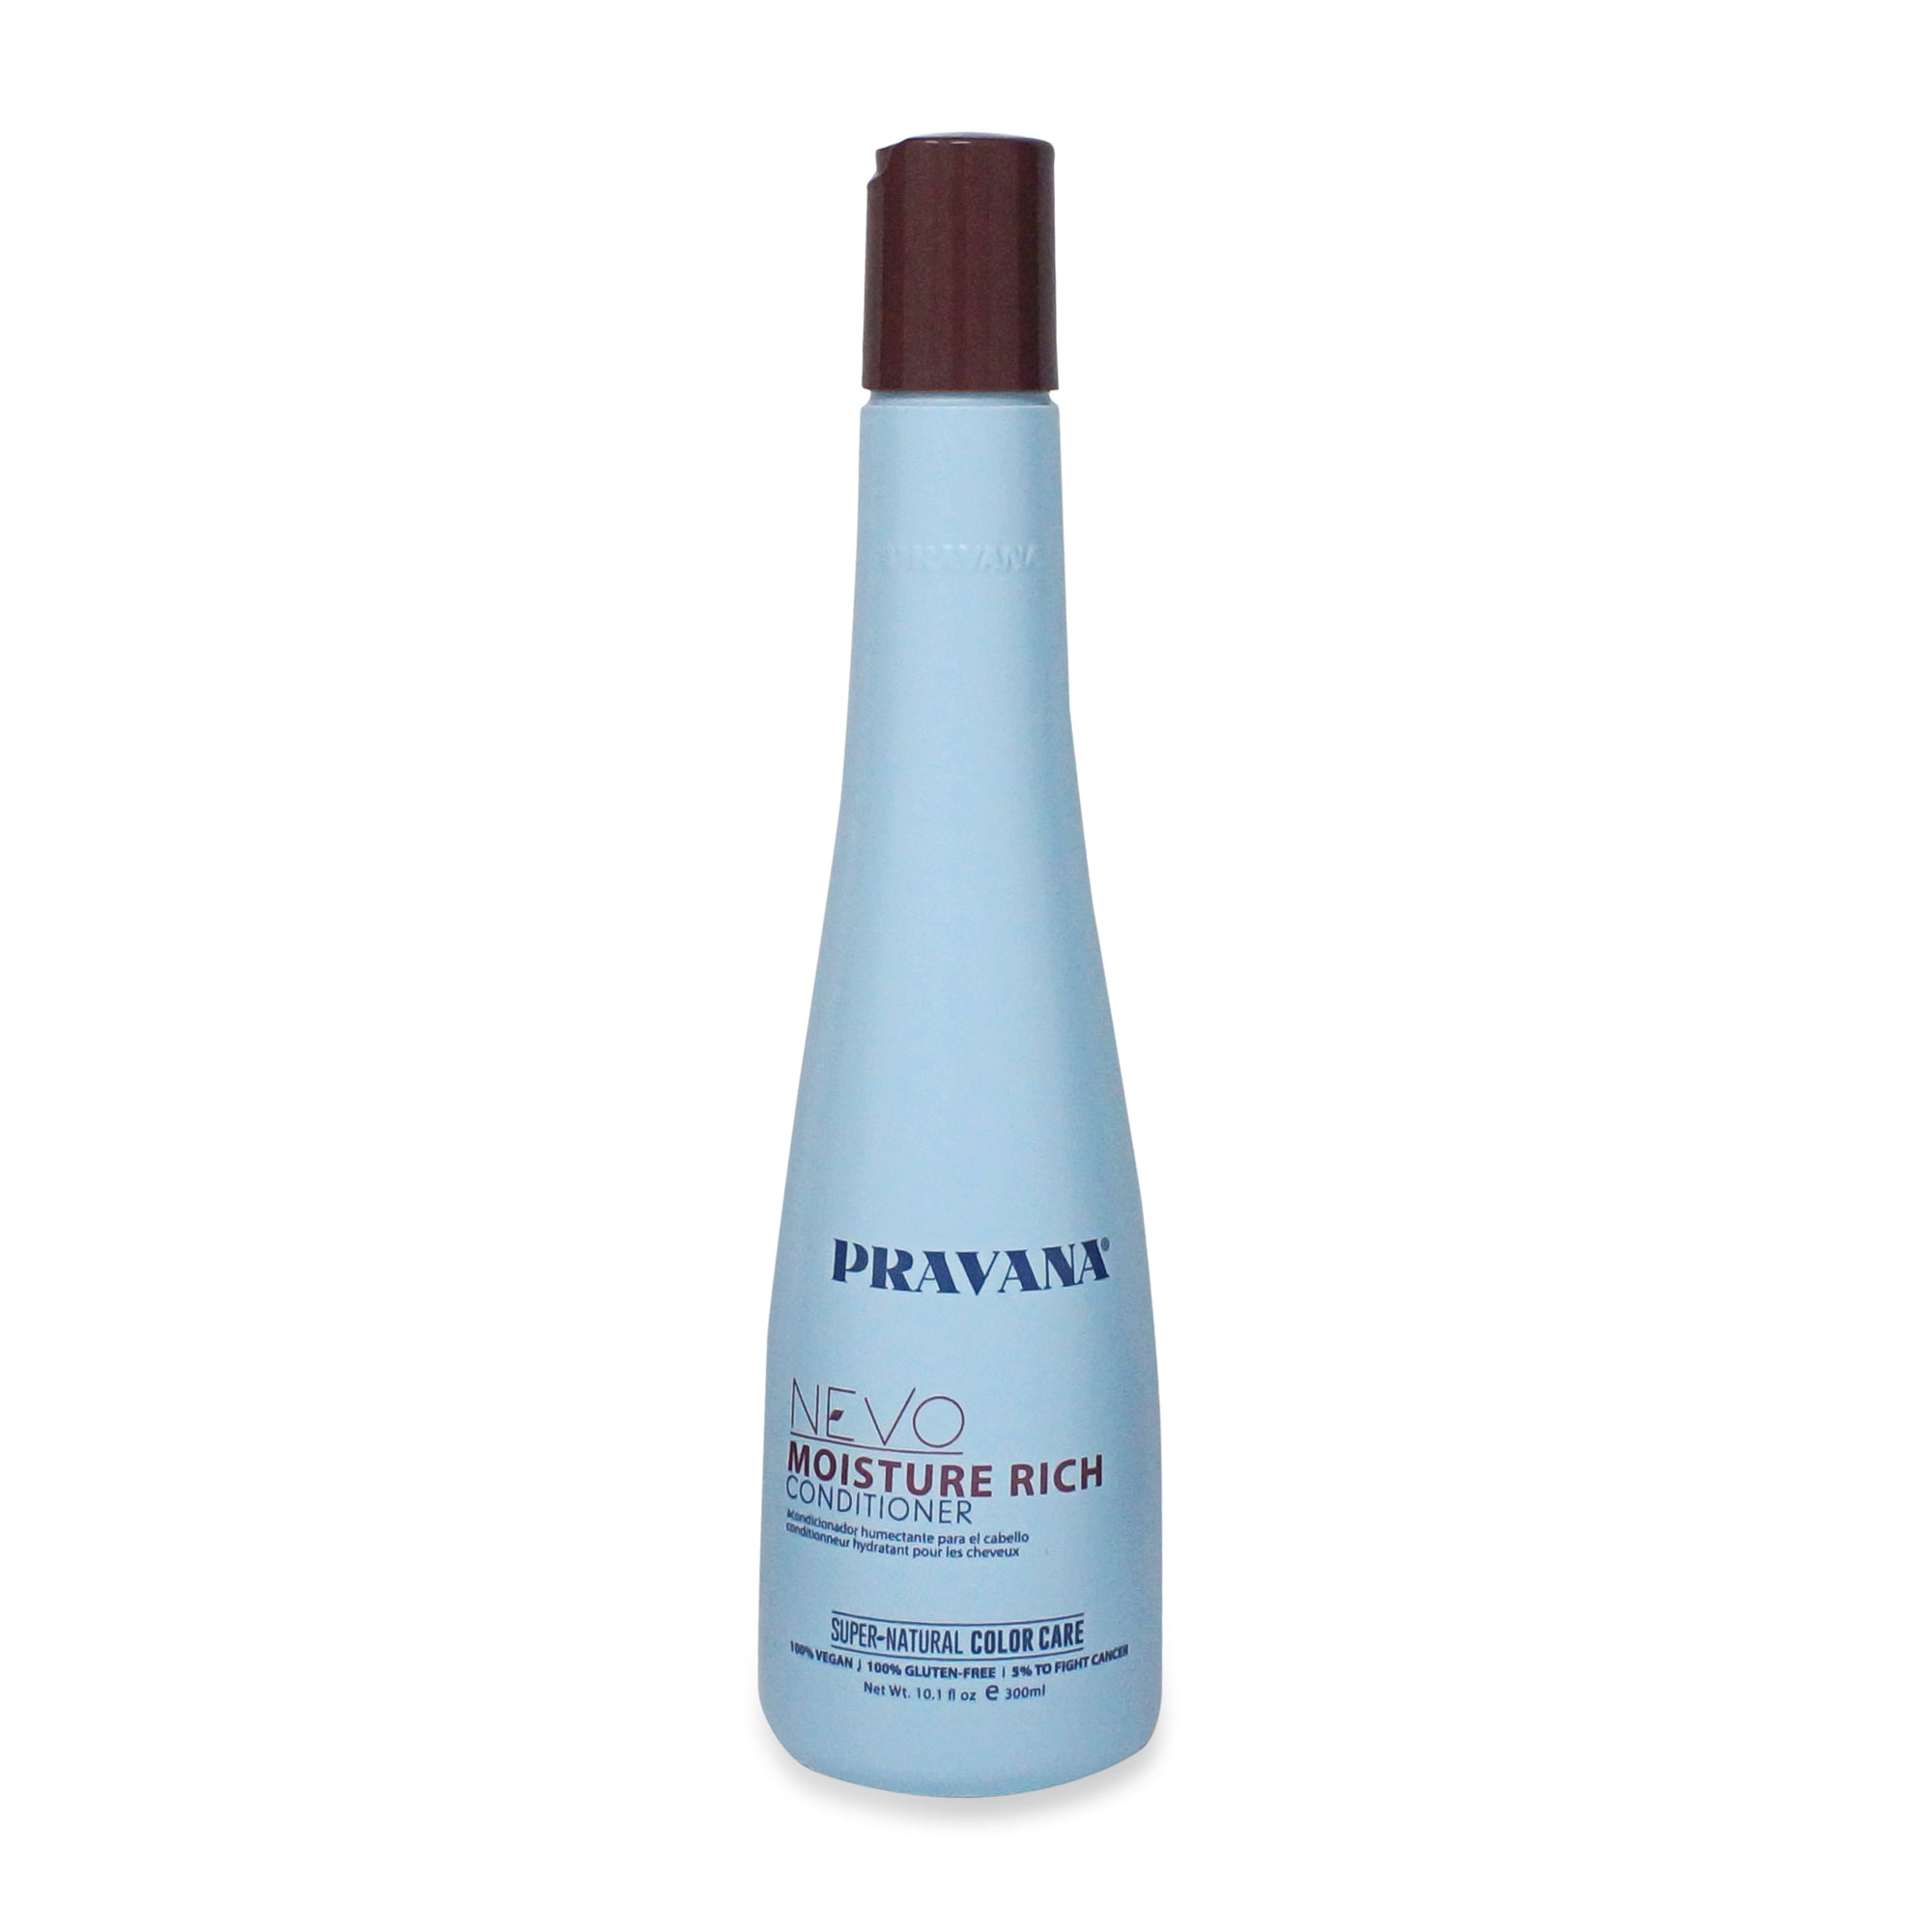 PRAVANA ~ NEVO MOISTURE RICH CONDITIONER 10.1 OZ.